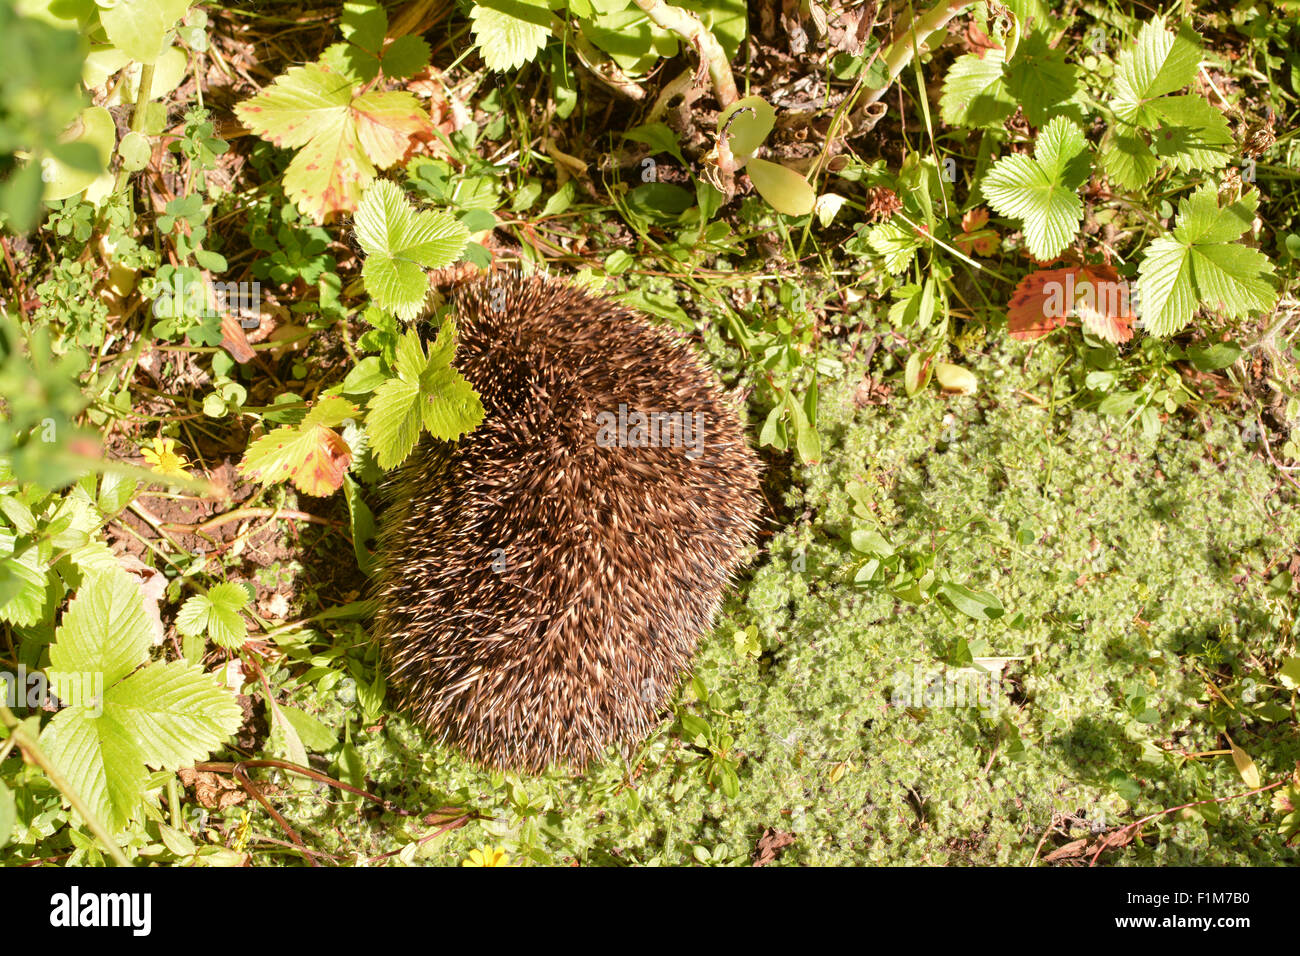 small, very probably sick, hedgehog curled up in the sun trying to keep warm - Scotland, UK - Stock Image